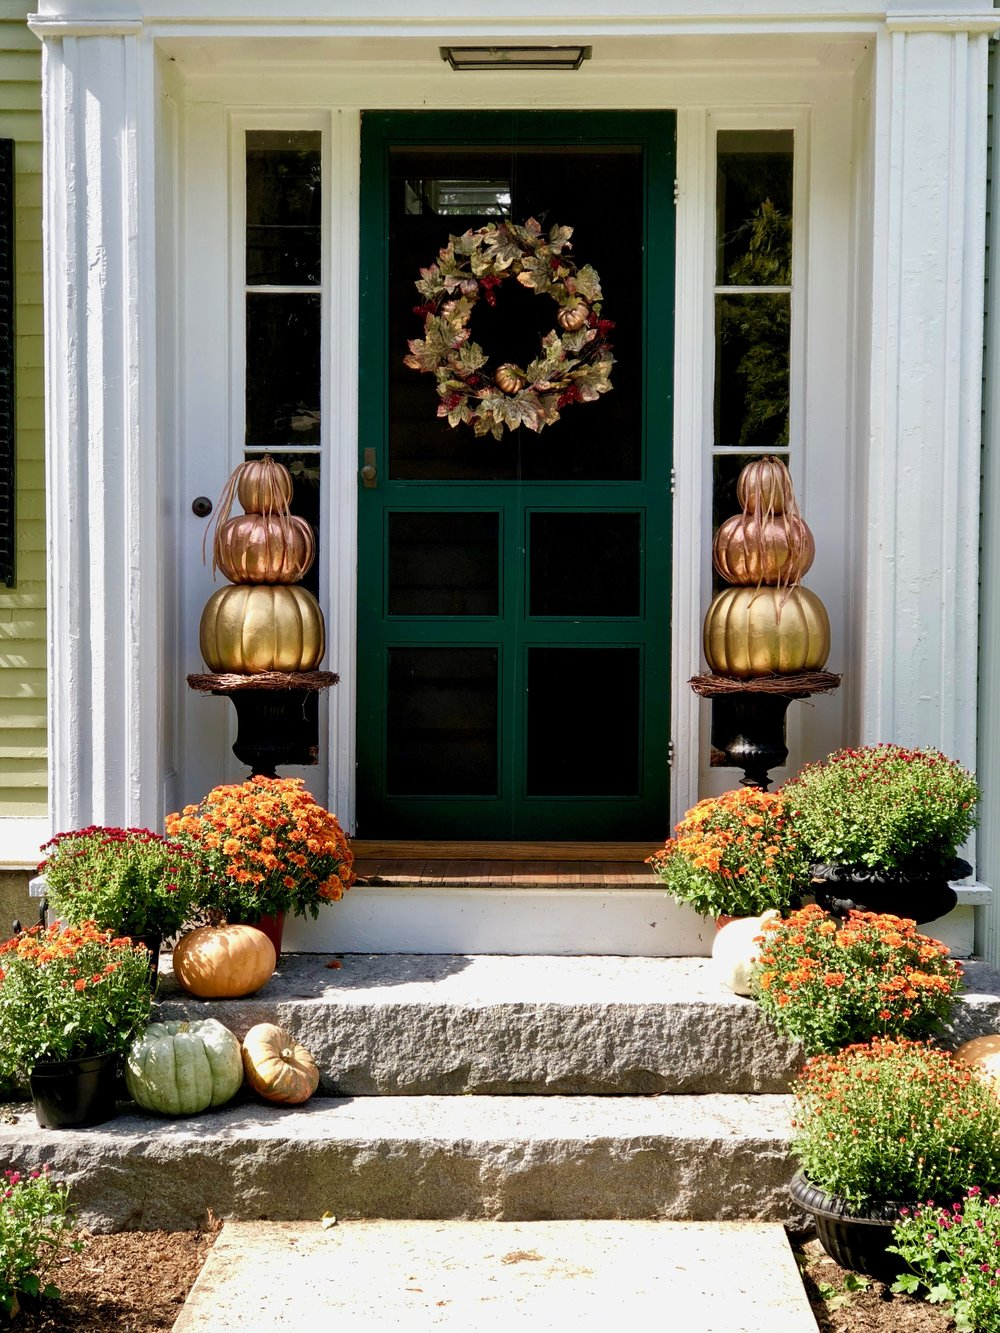 New England fall entrance with pumpkin topiaries new england fine living.jpg